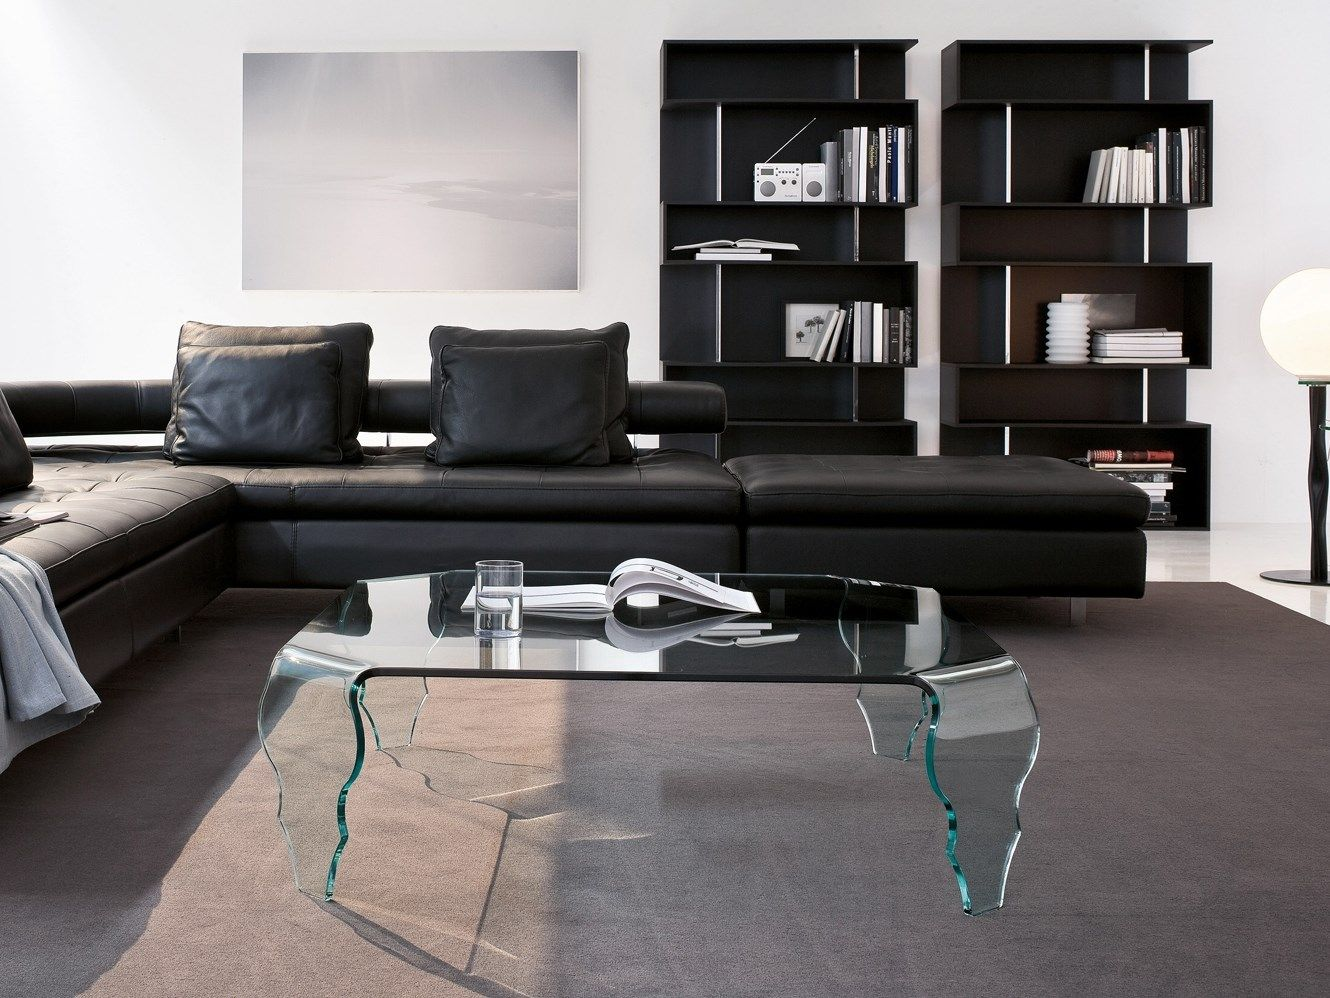 Glass coffee table in living room contemporary glass living room coffee table  ololoshenka  pinterest